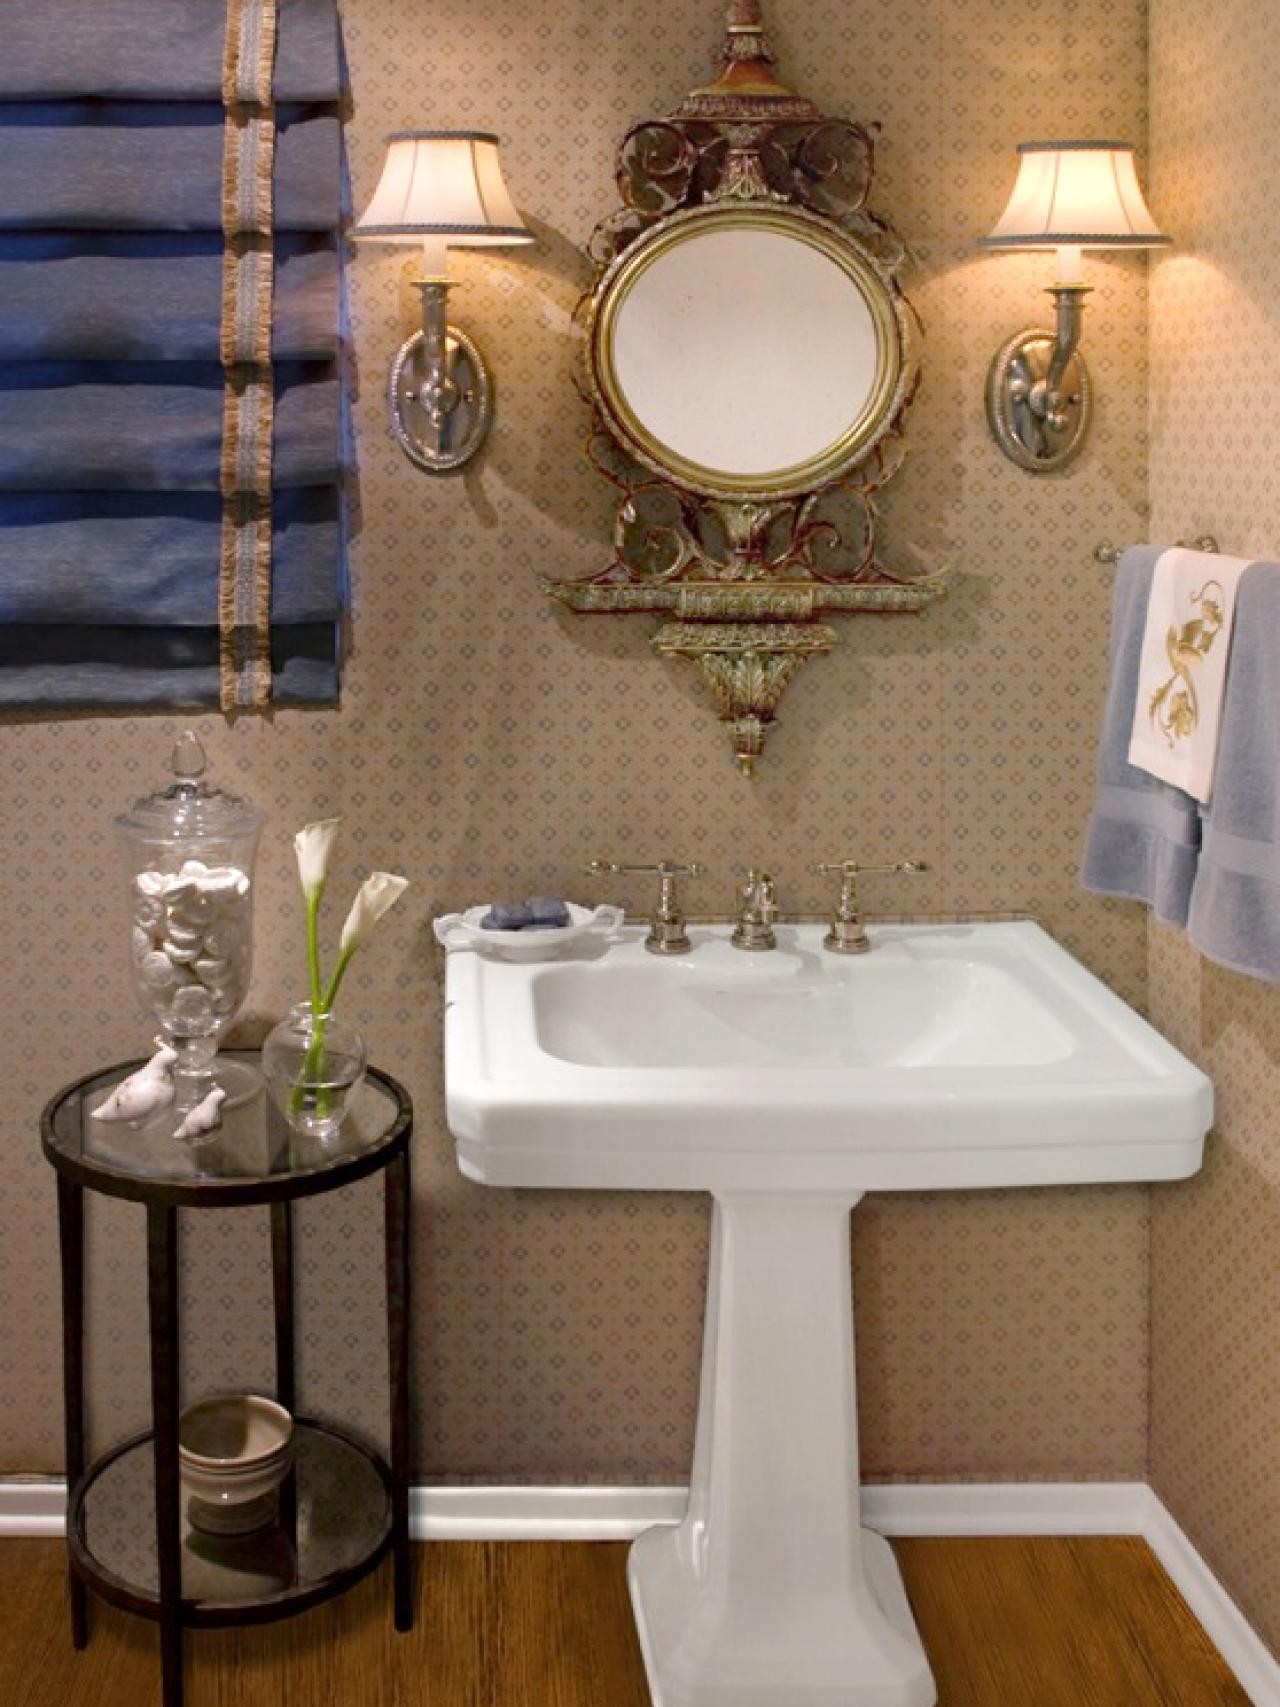 Elegant powder room with stunning pedestal sink and ornate - Small powder room sink ...